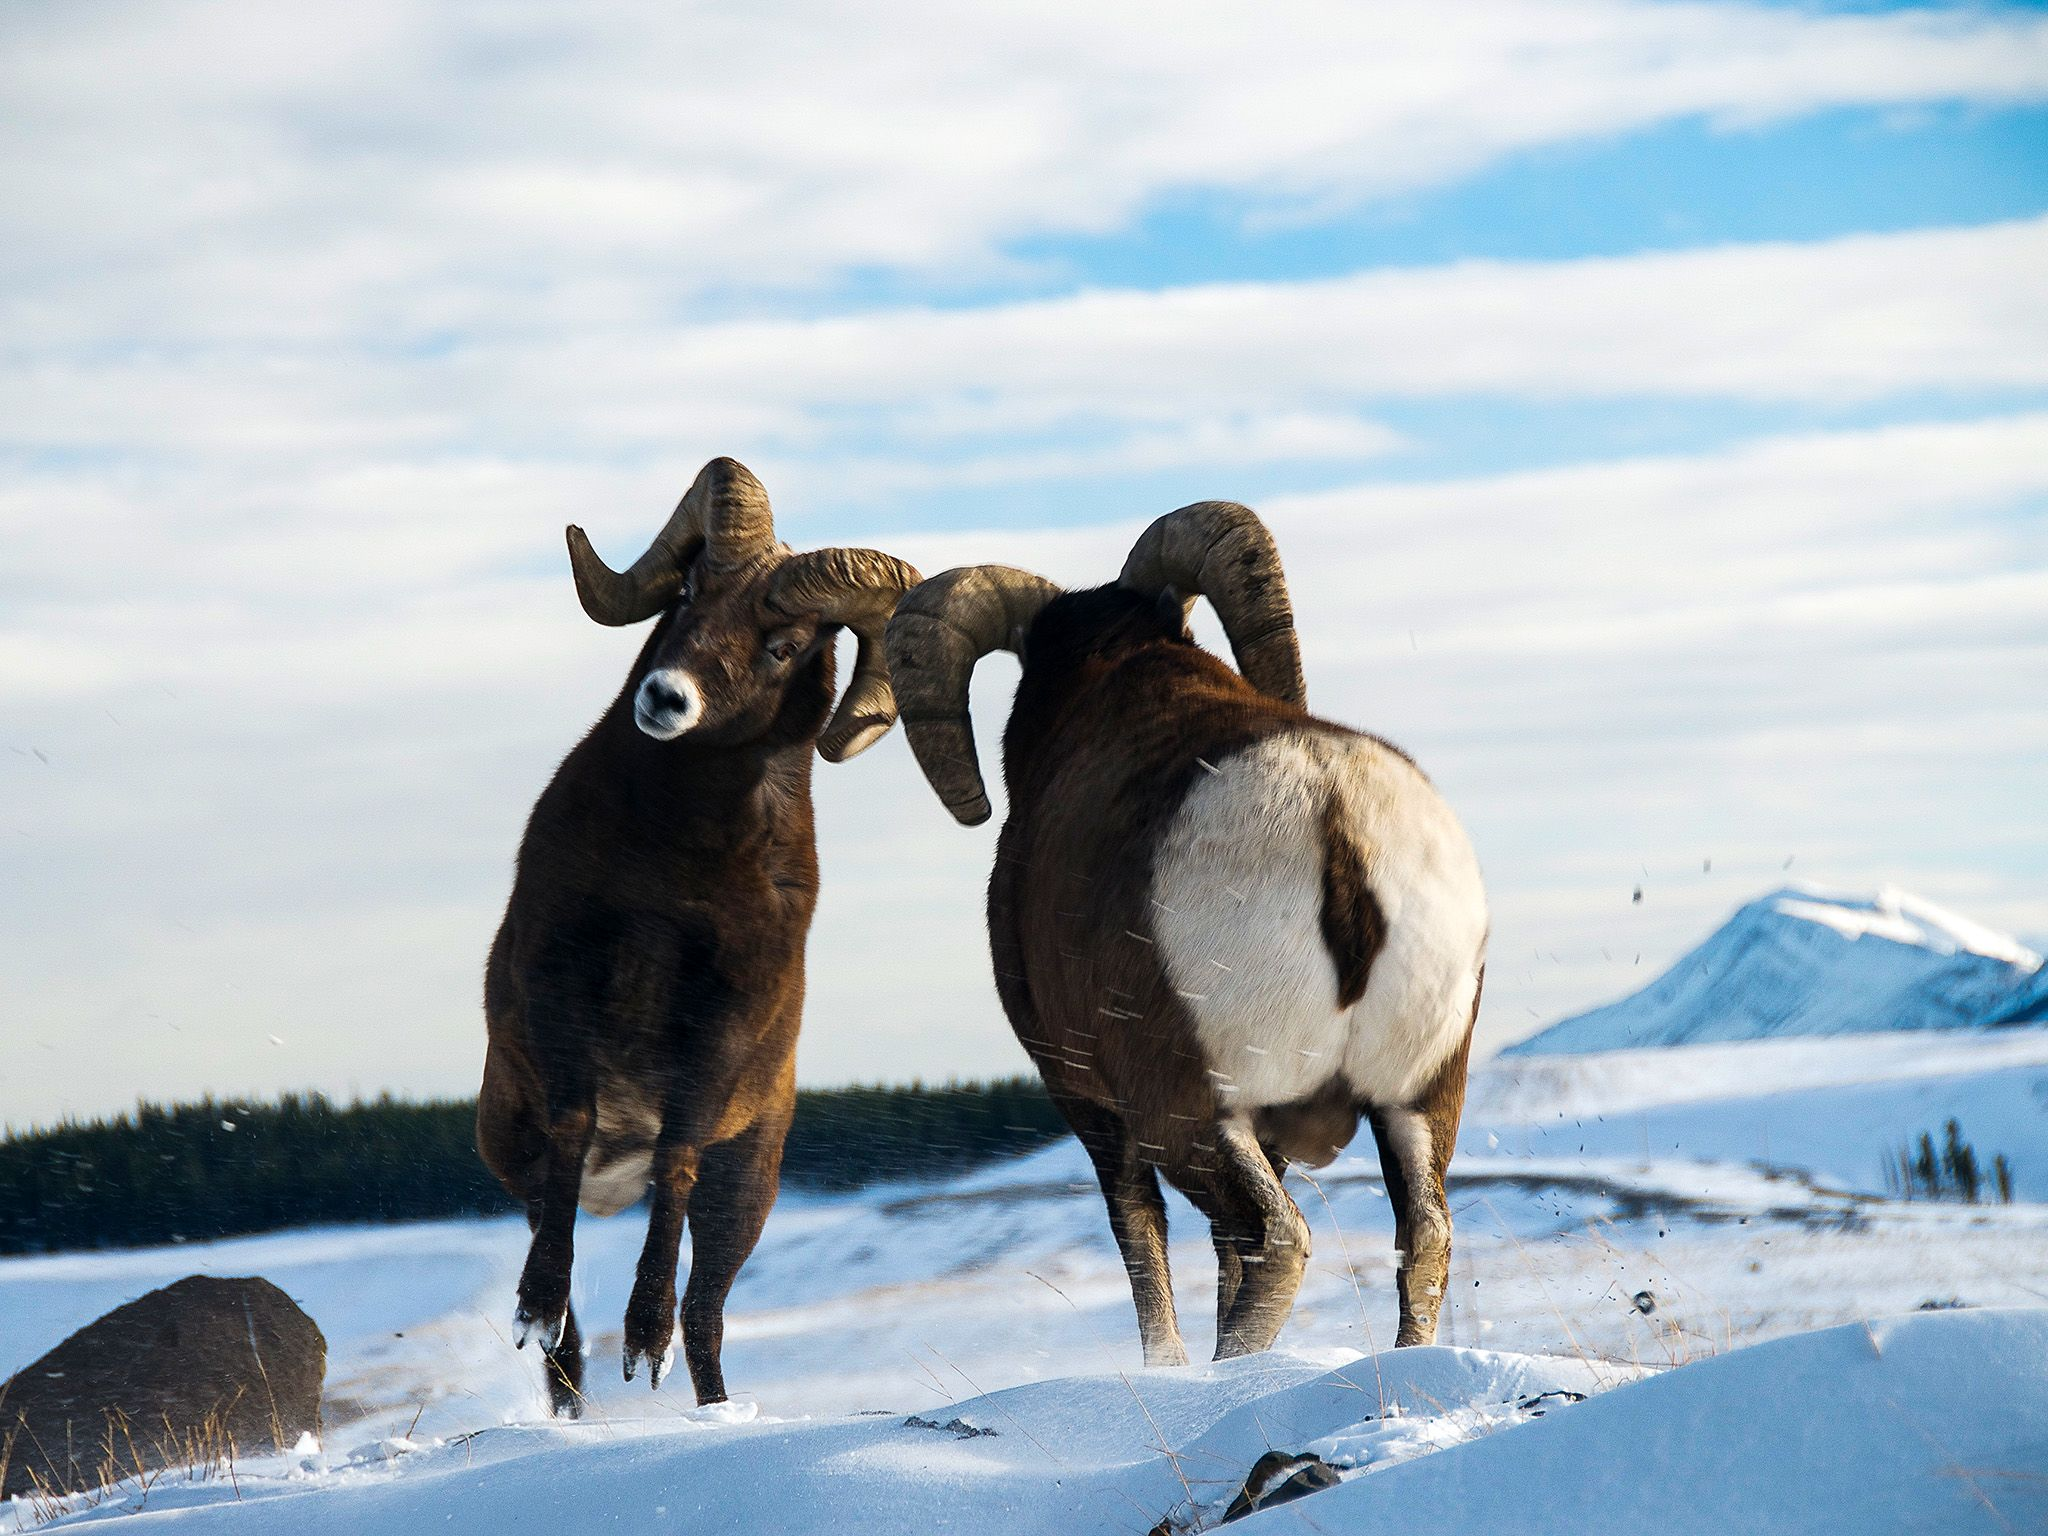 Bighorn sheep rams fight during the rutting season. This image is from Wild Canada. [Фото дня - Октябрь 2014]